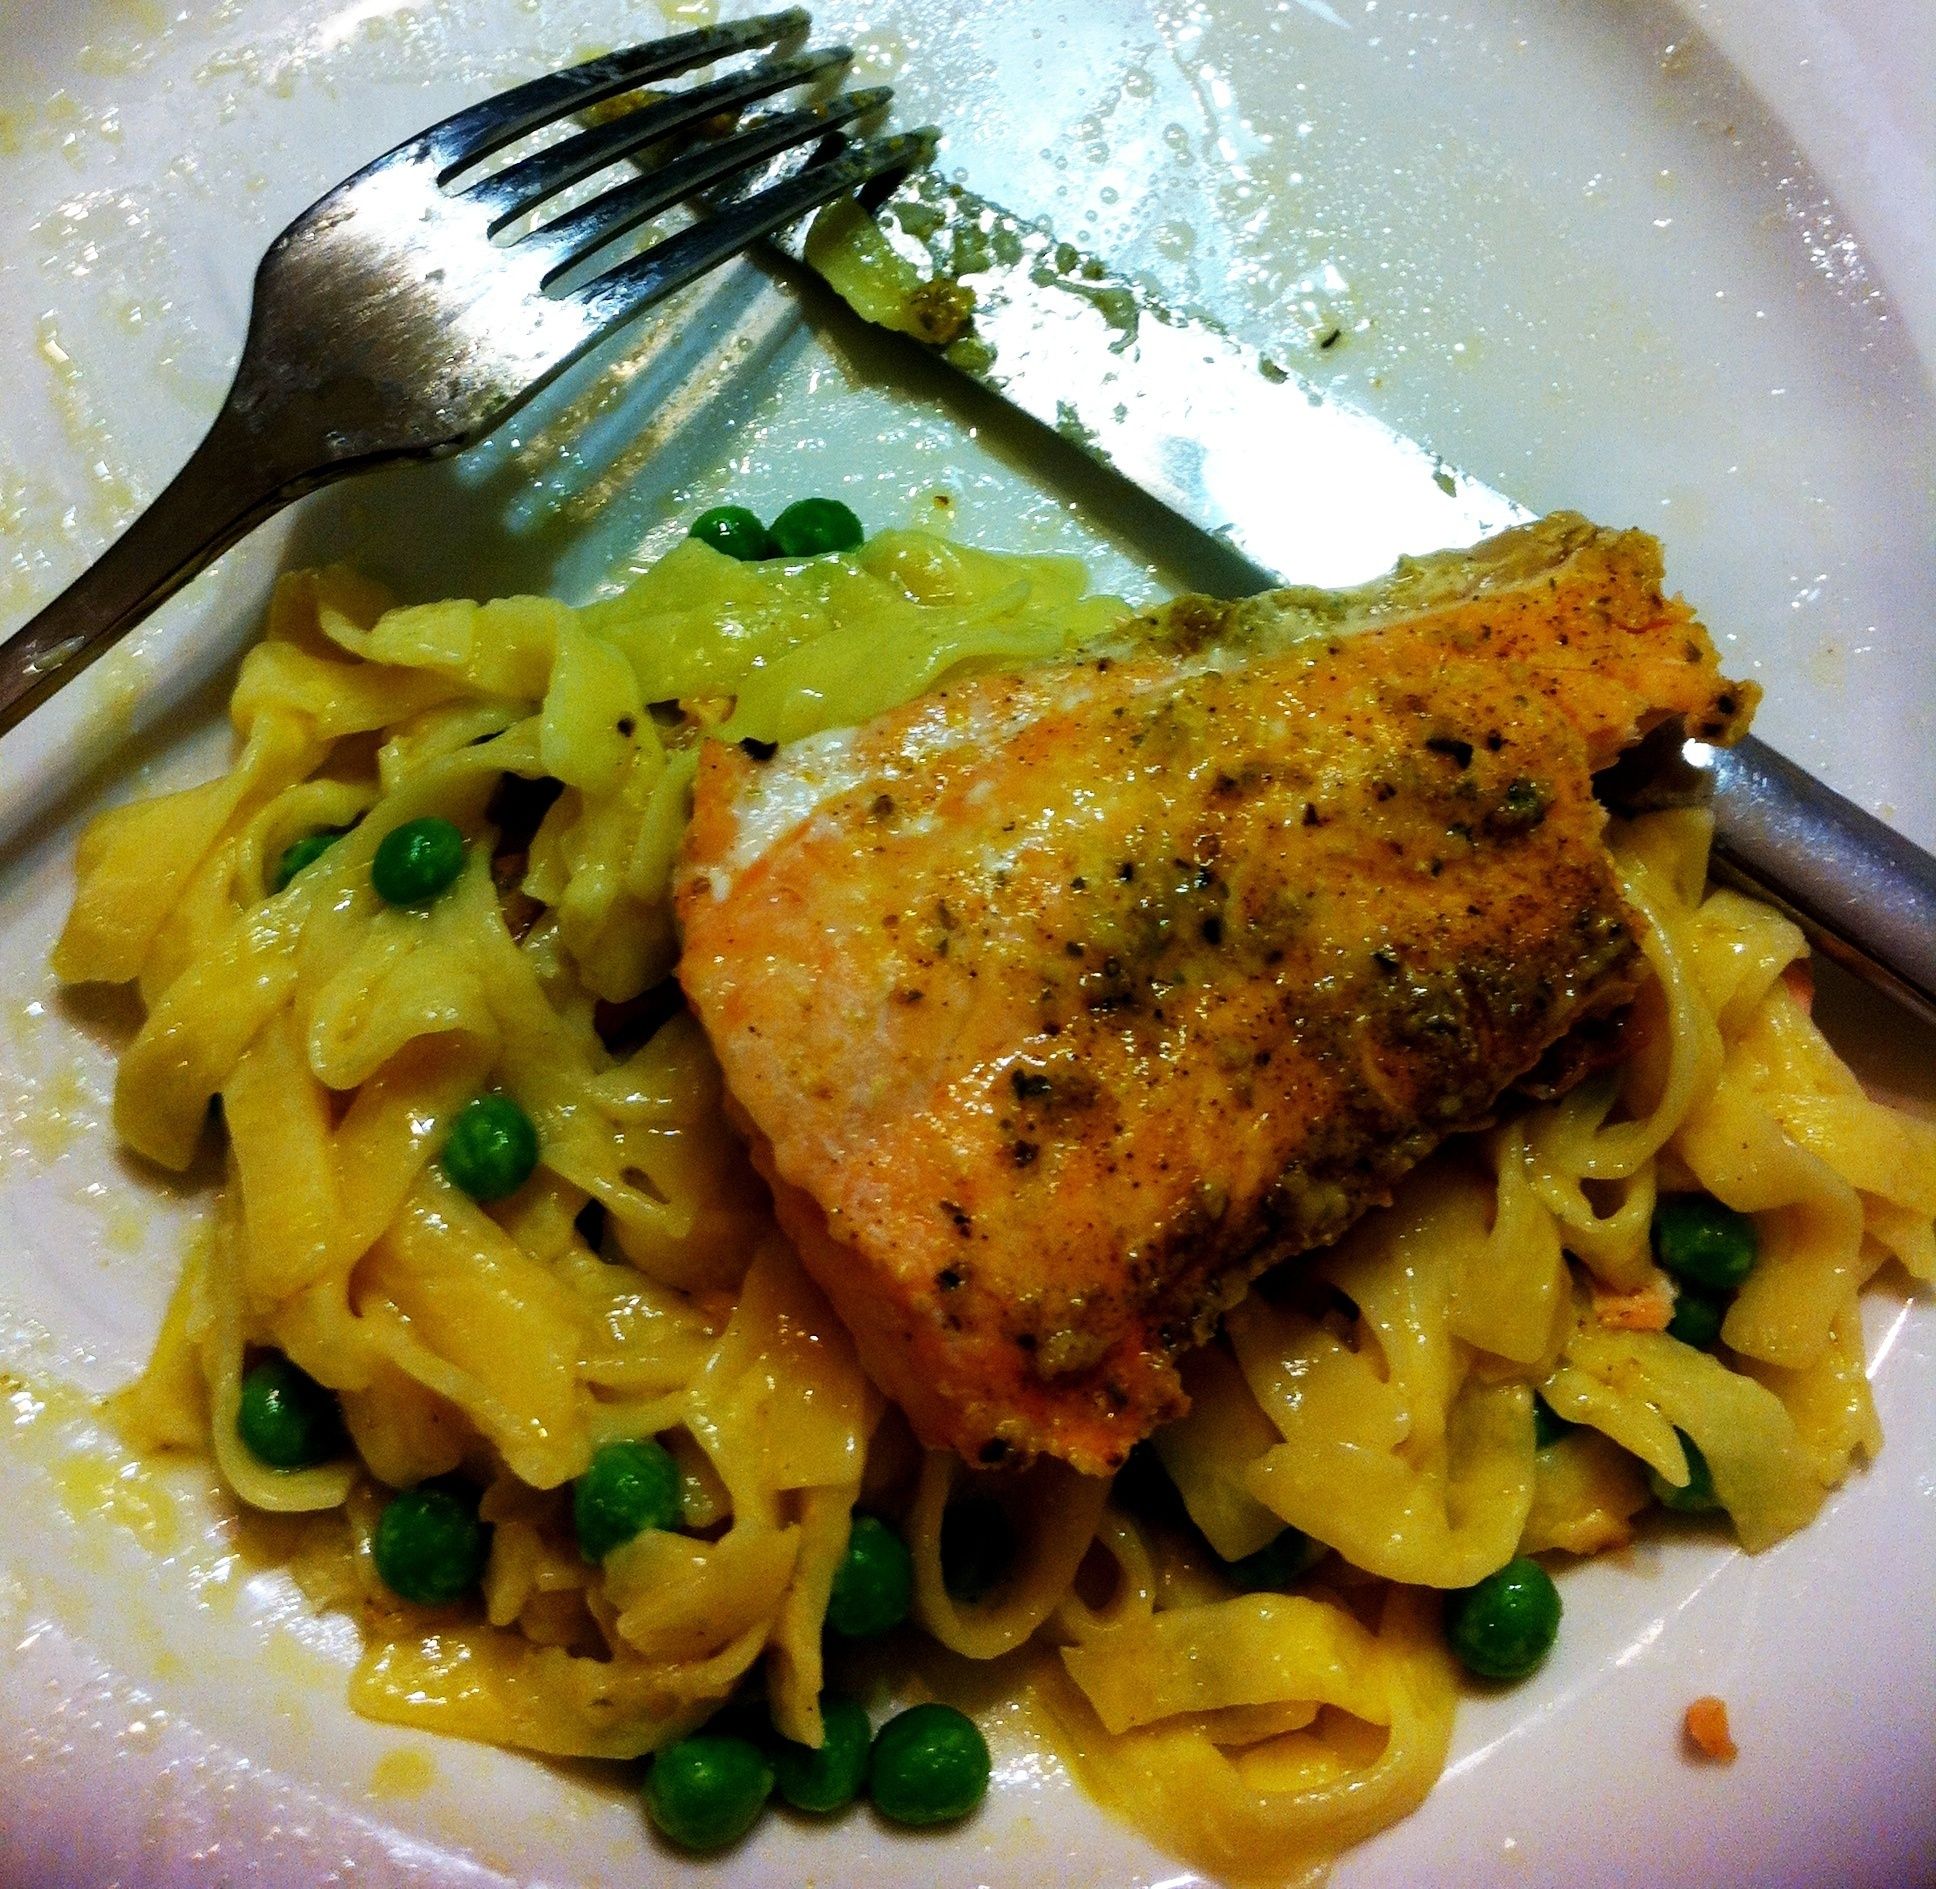 Creamy Pasta with Salmon & Peas